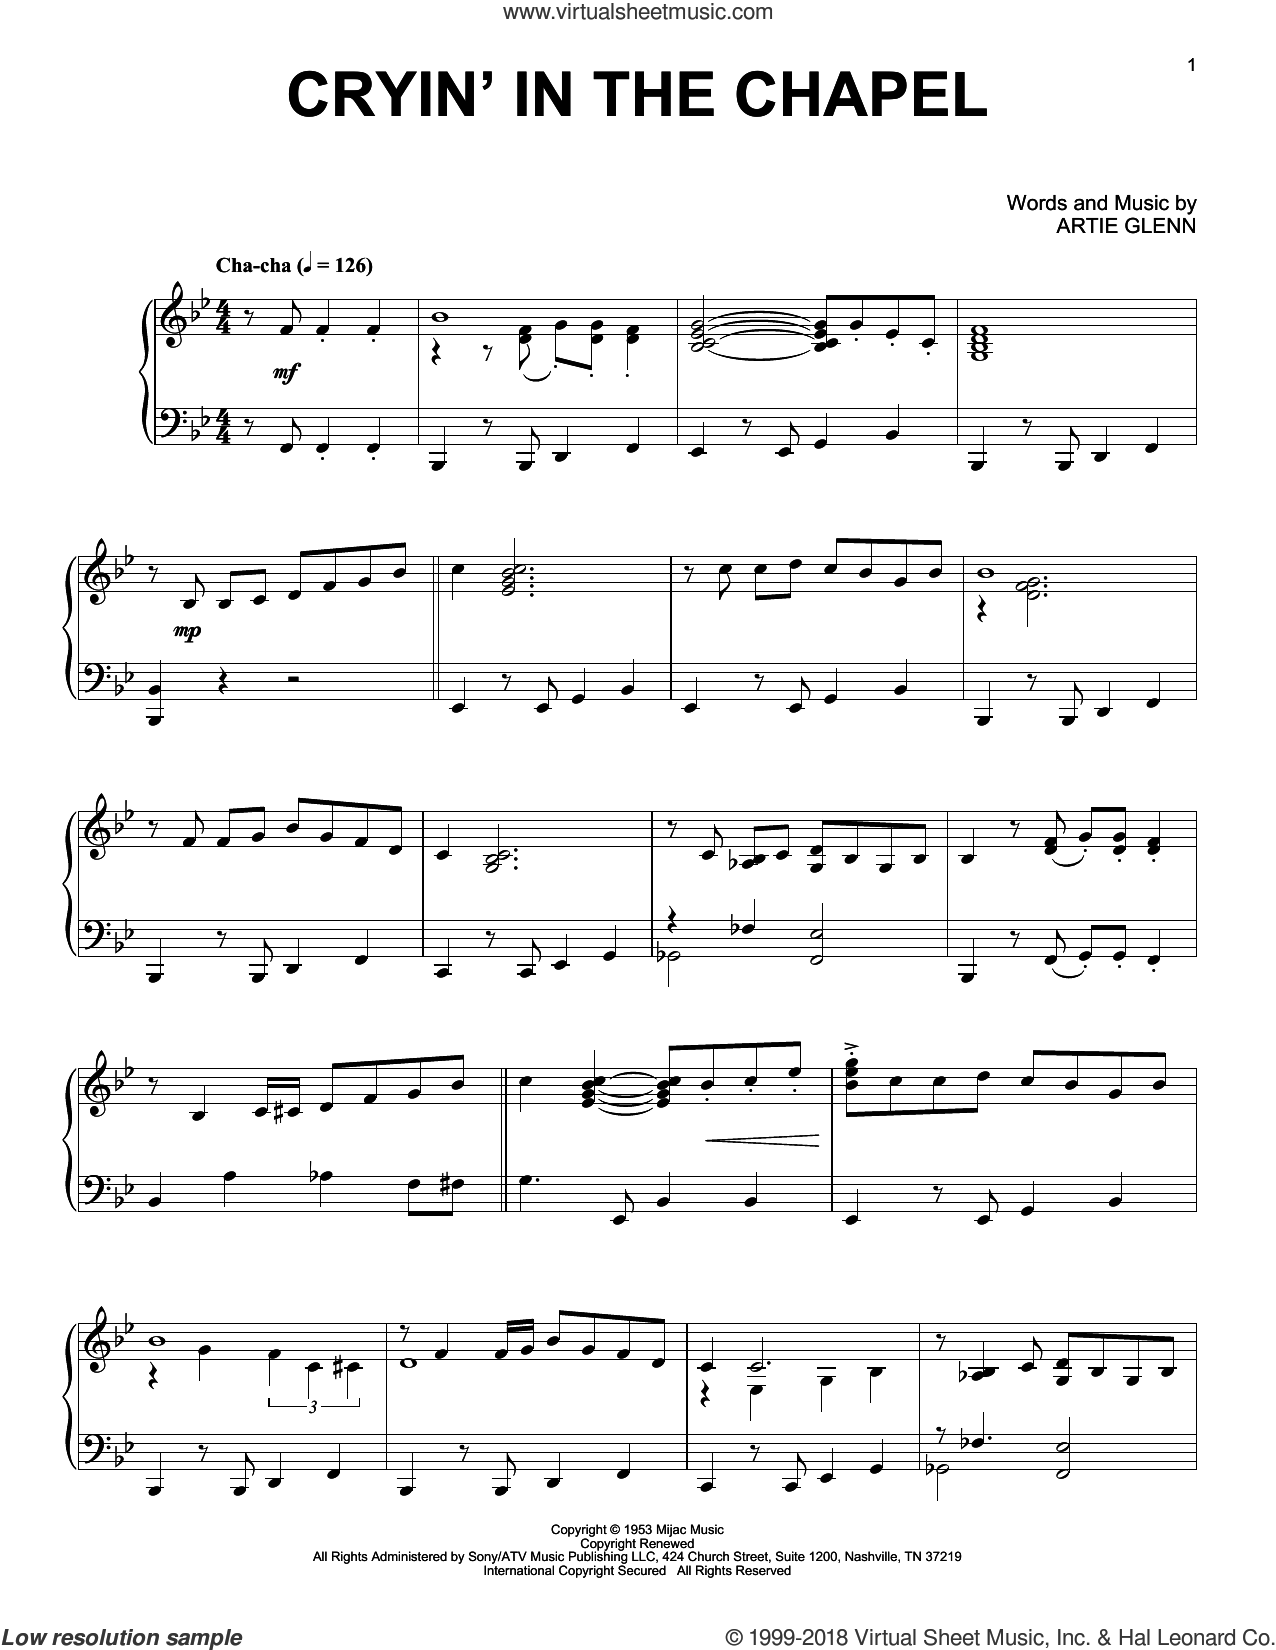 Cryin' In The Chapel sheet music for piano solo by Elvis Presley and Artie Glenn, intermediate